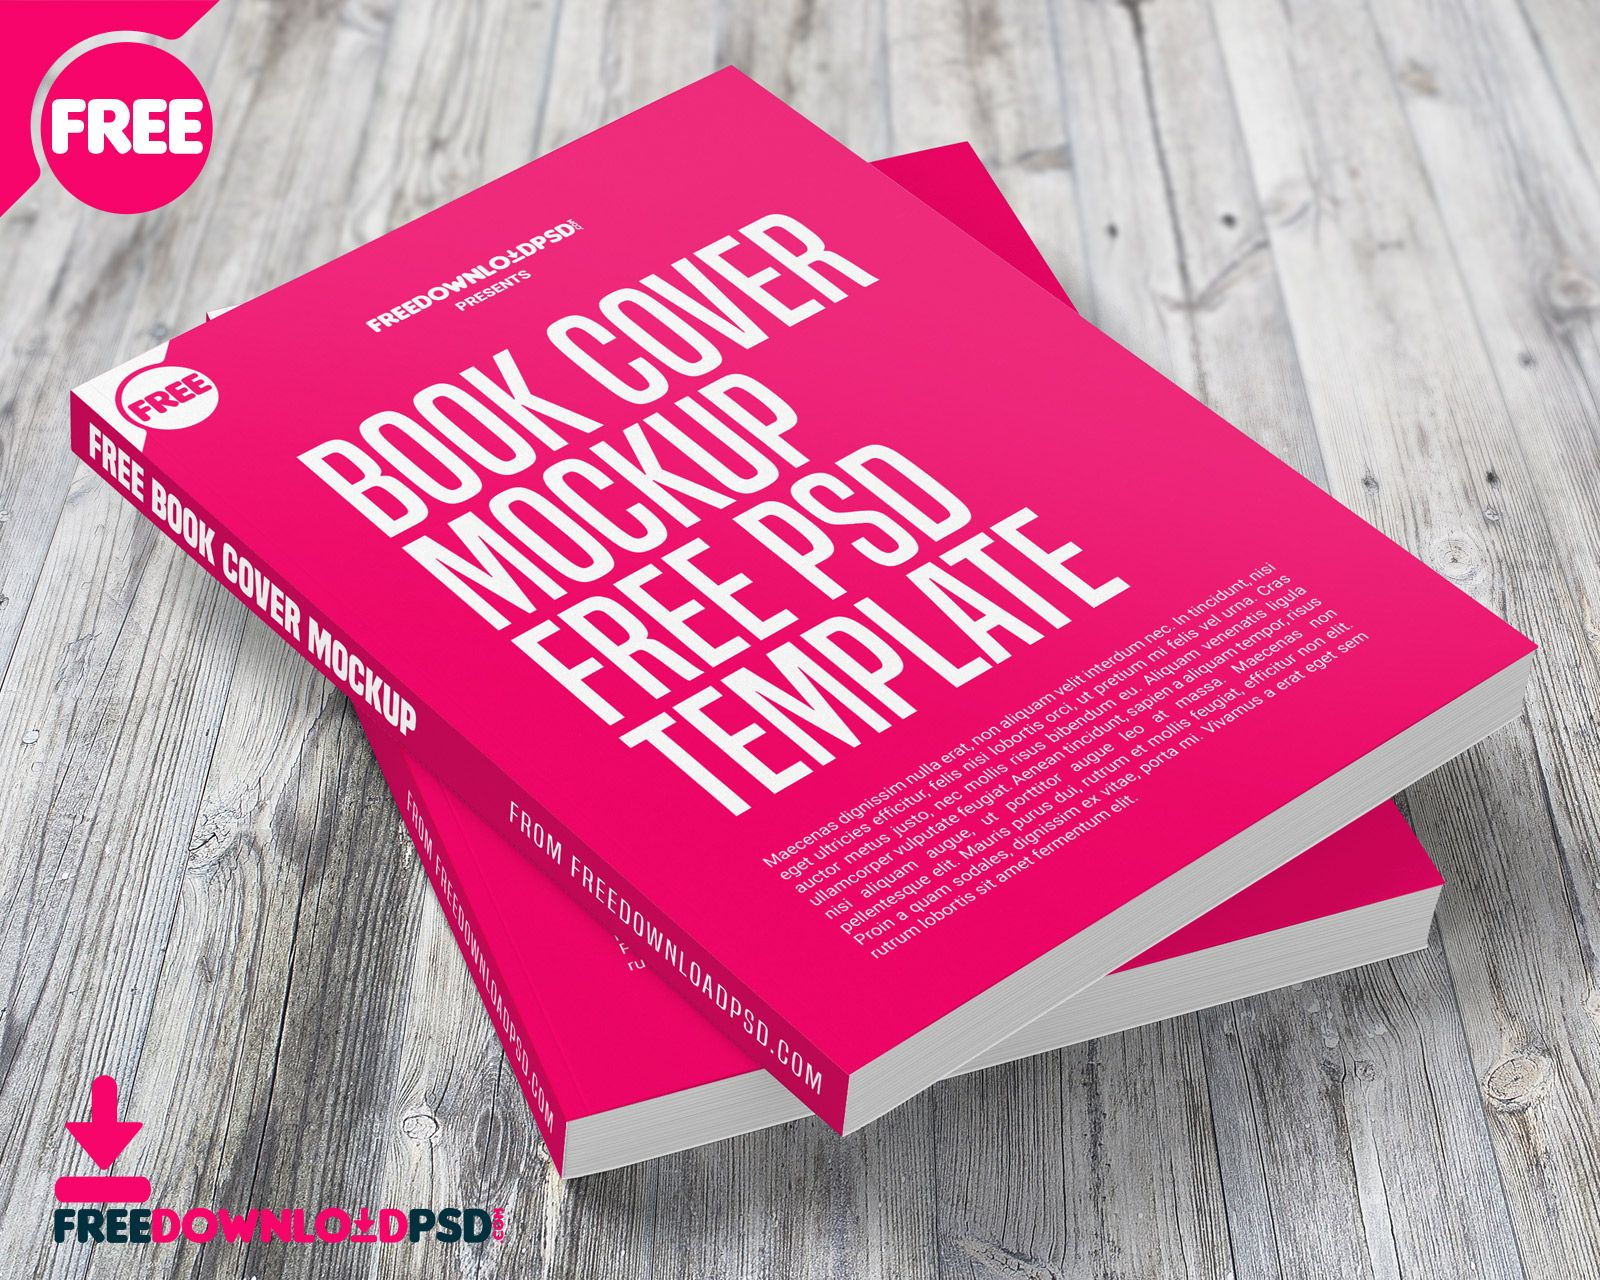 book cover free mockup 3d book cover creator 3d book cover maker